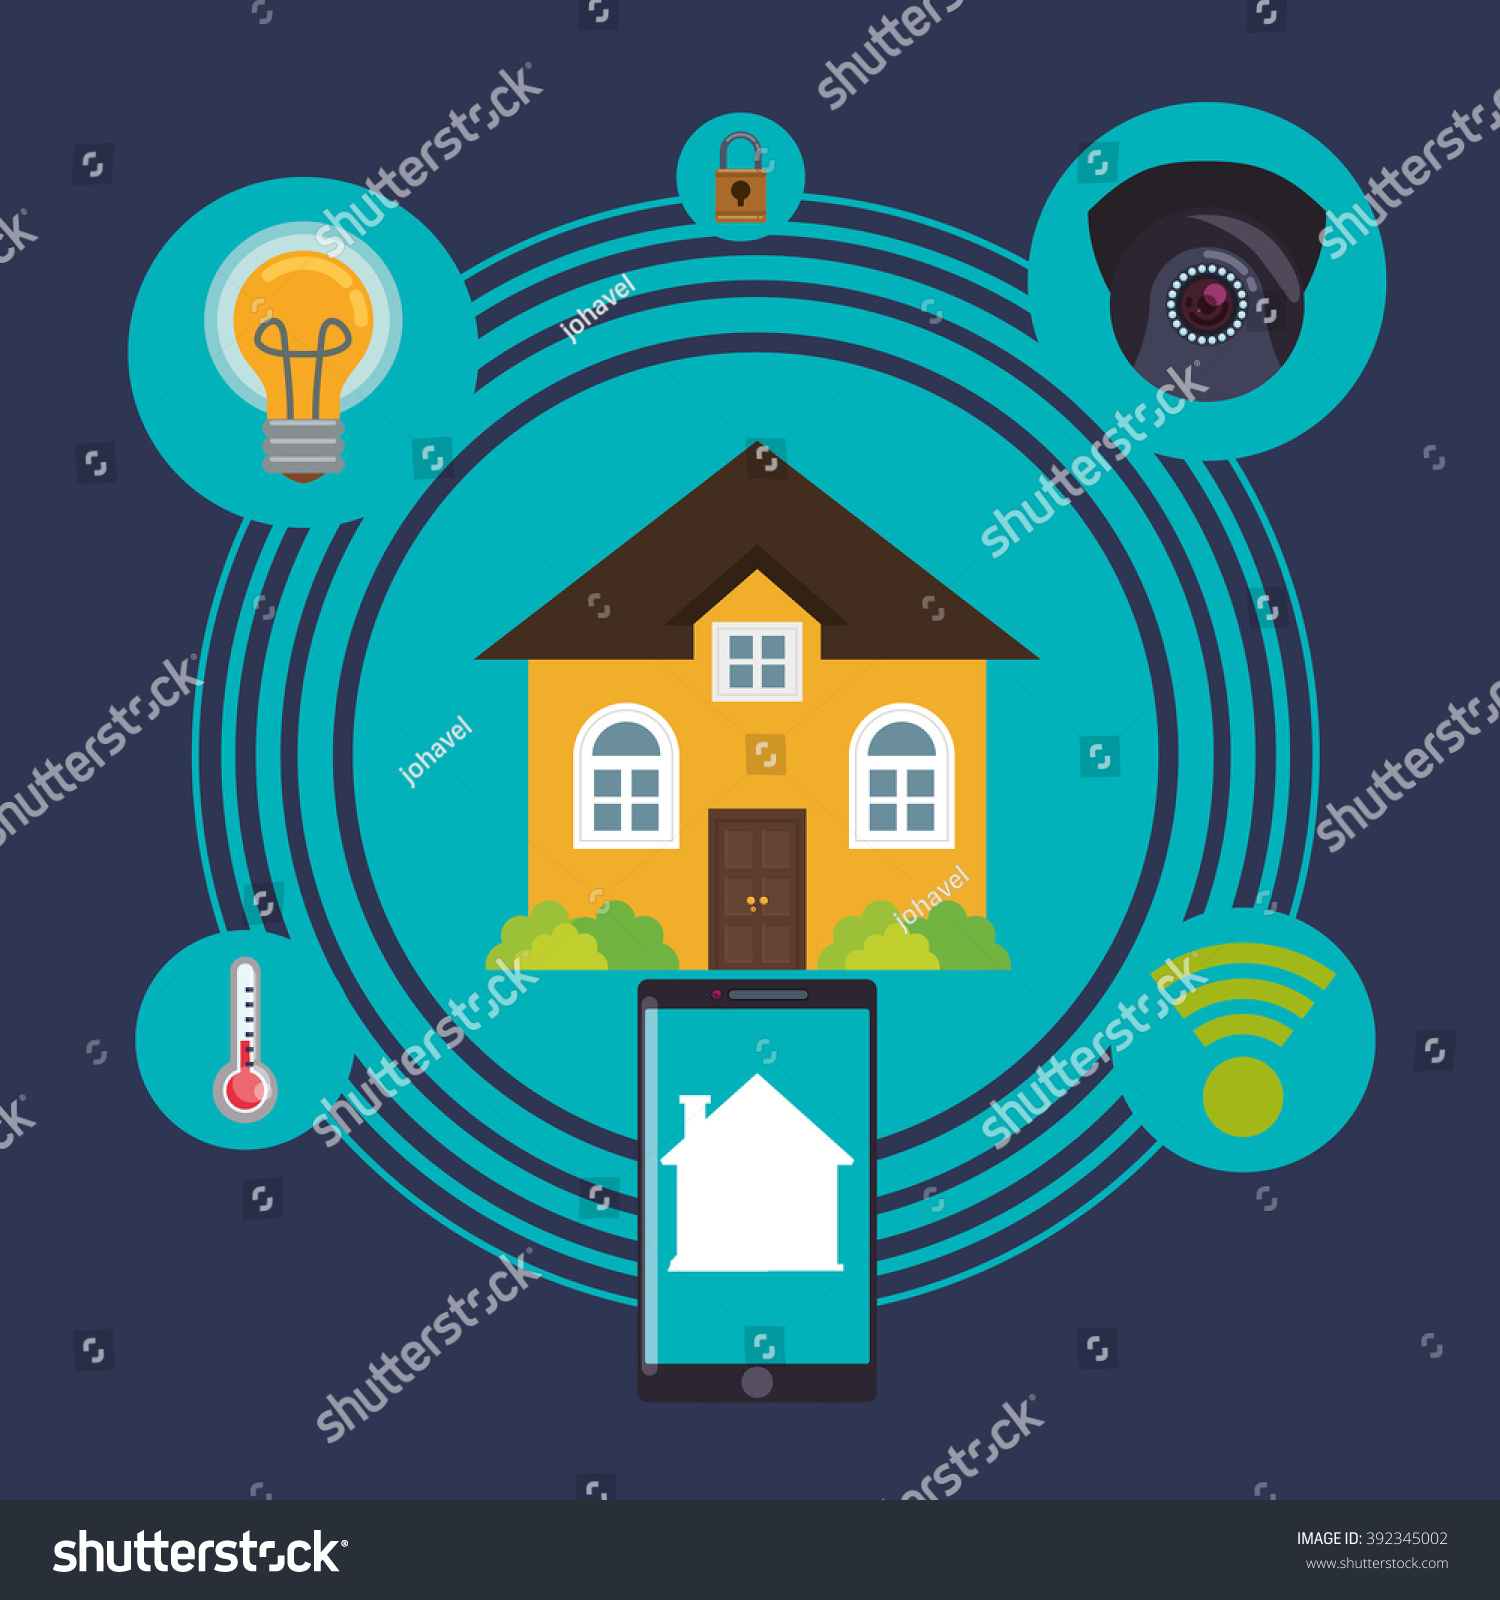 Home Automation Design Stock Vector 392345002 Shutterstock